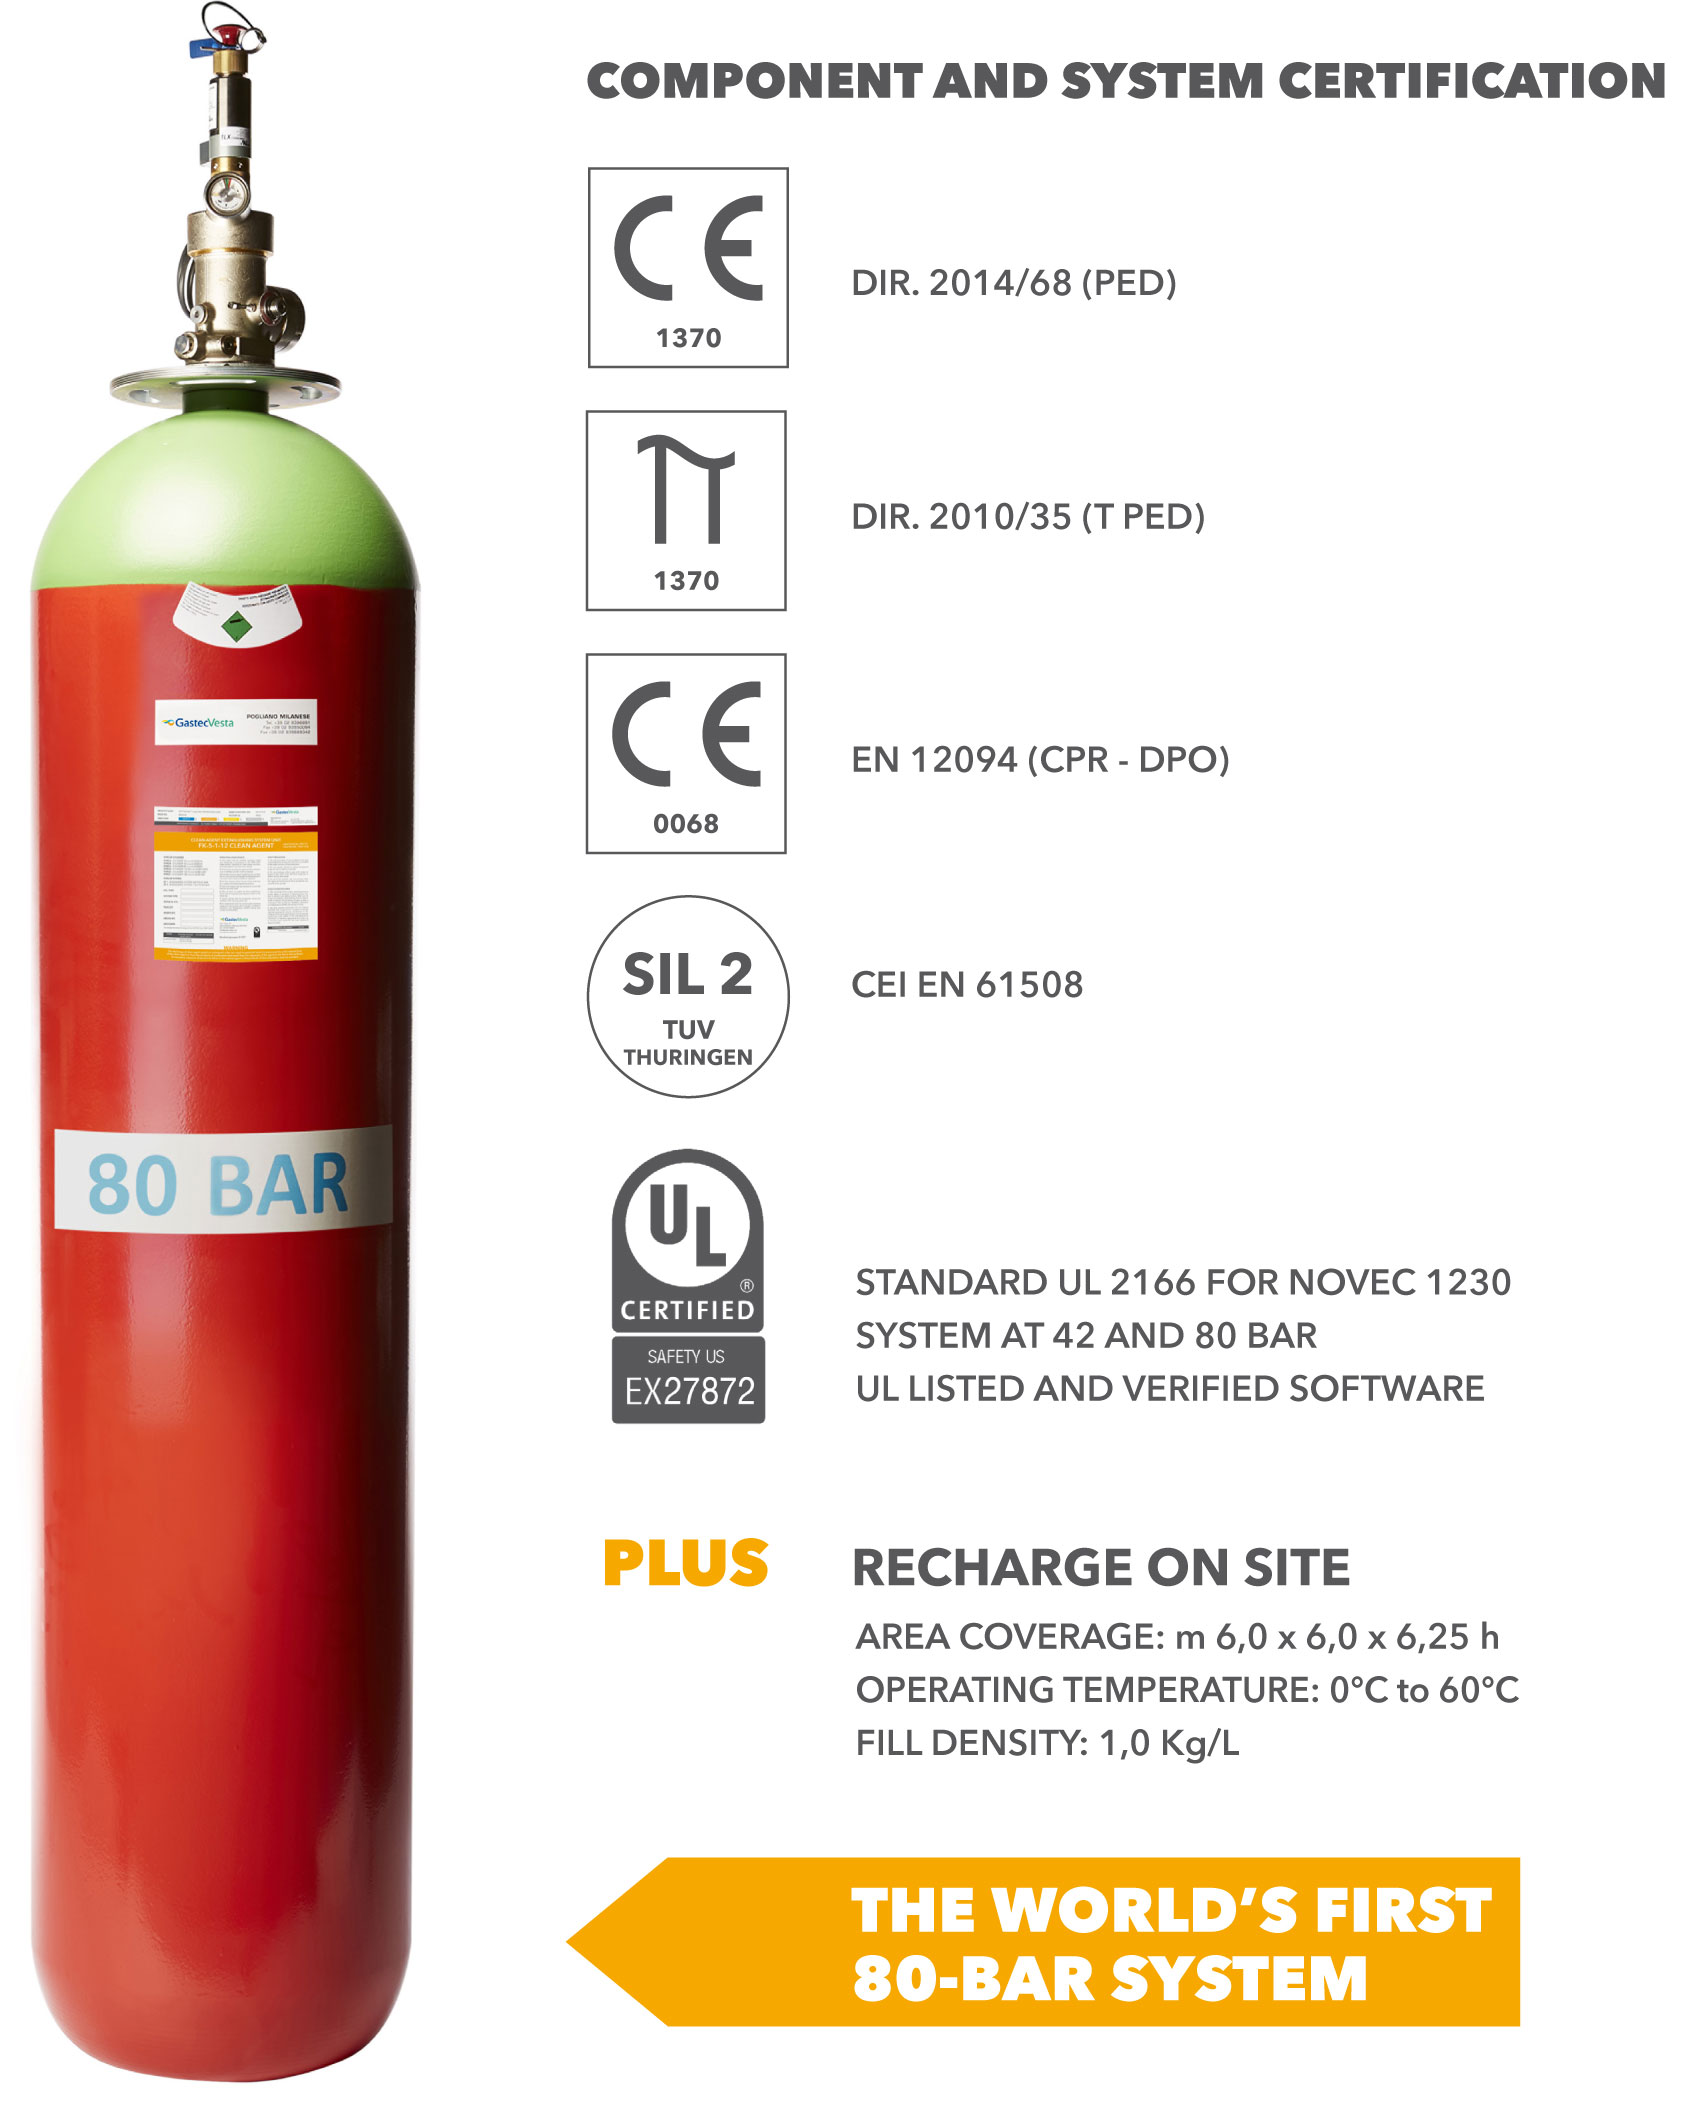 NOVEC™ 1230™ extinguishing agent is a 3M Company trademark